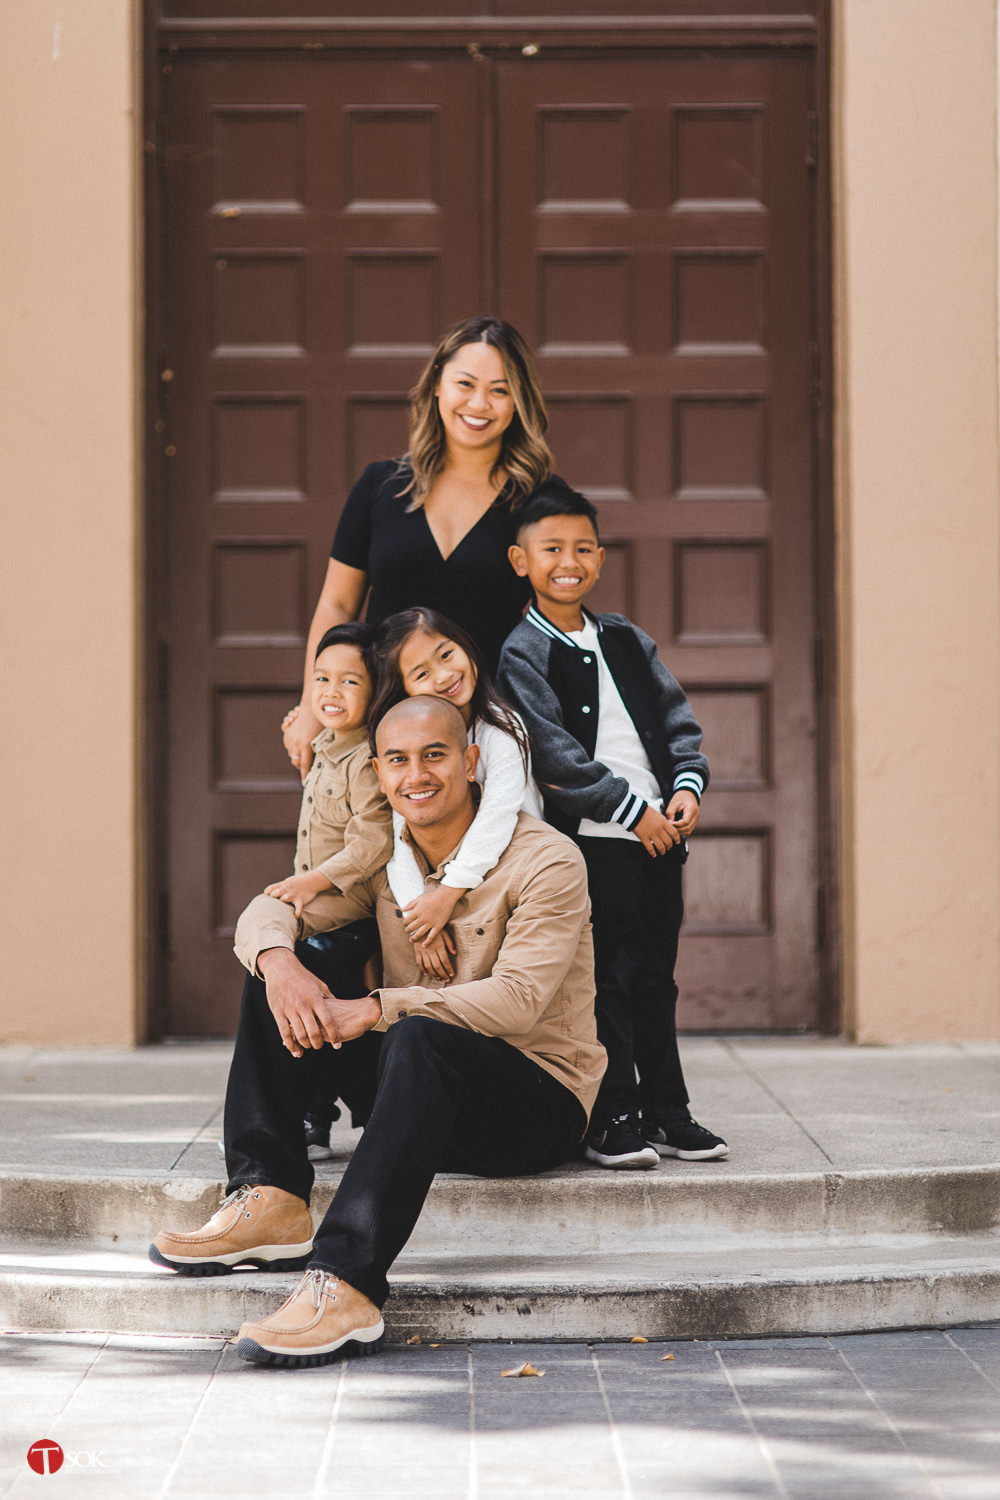 taylor-family-photoshoot-downtown-san-jose-25.jpg